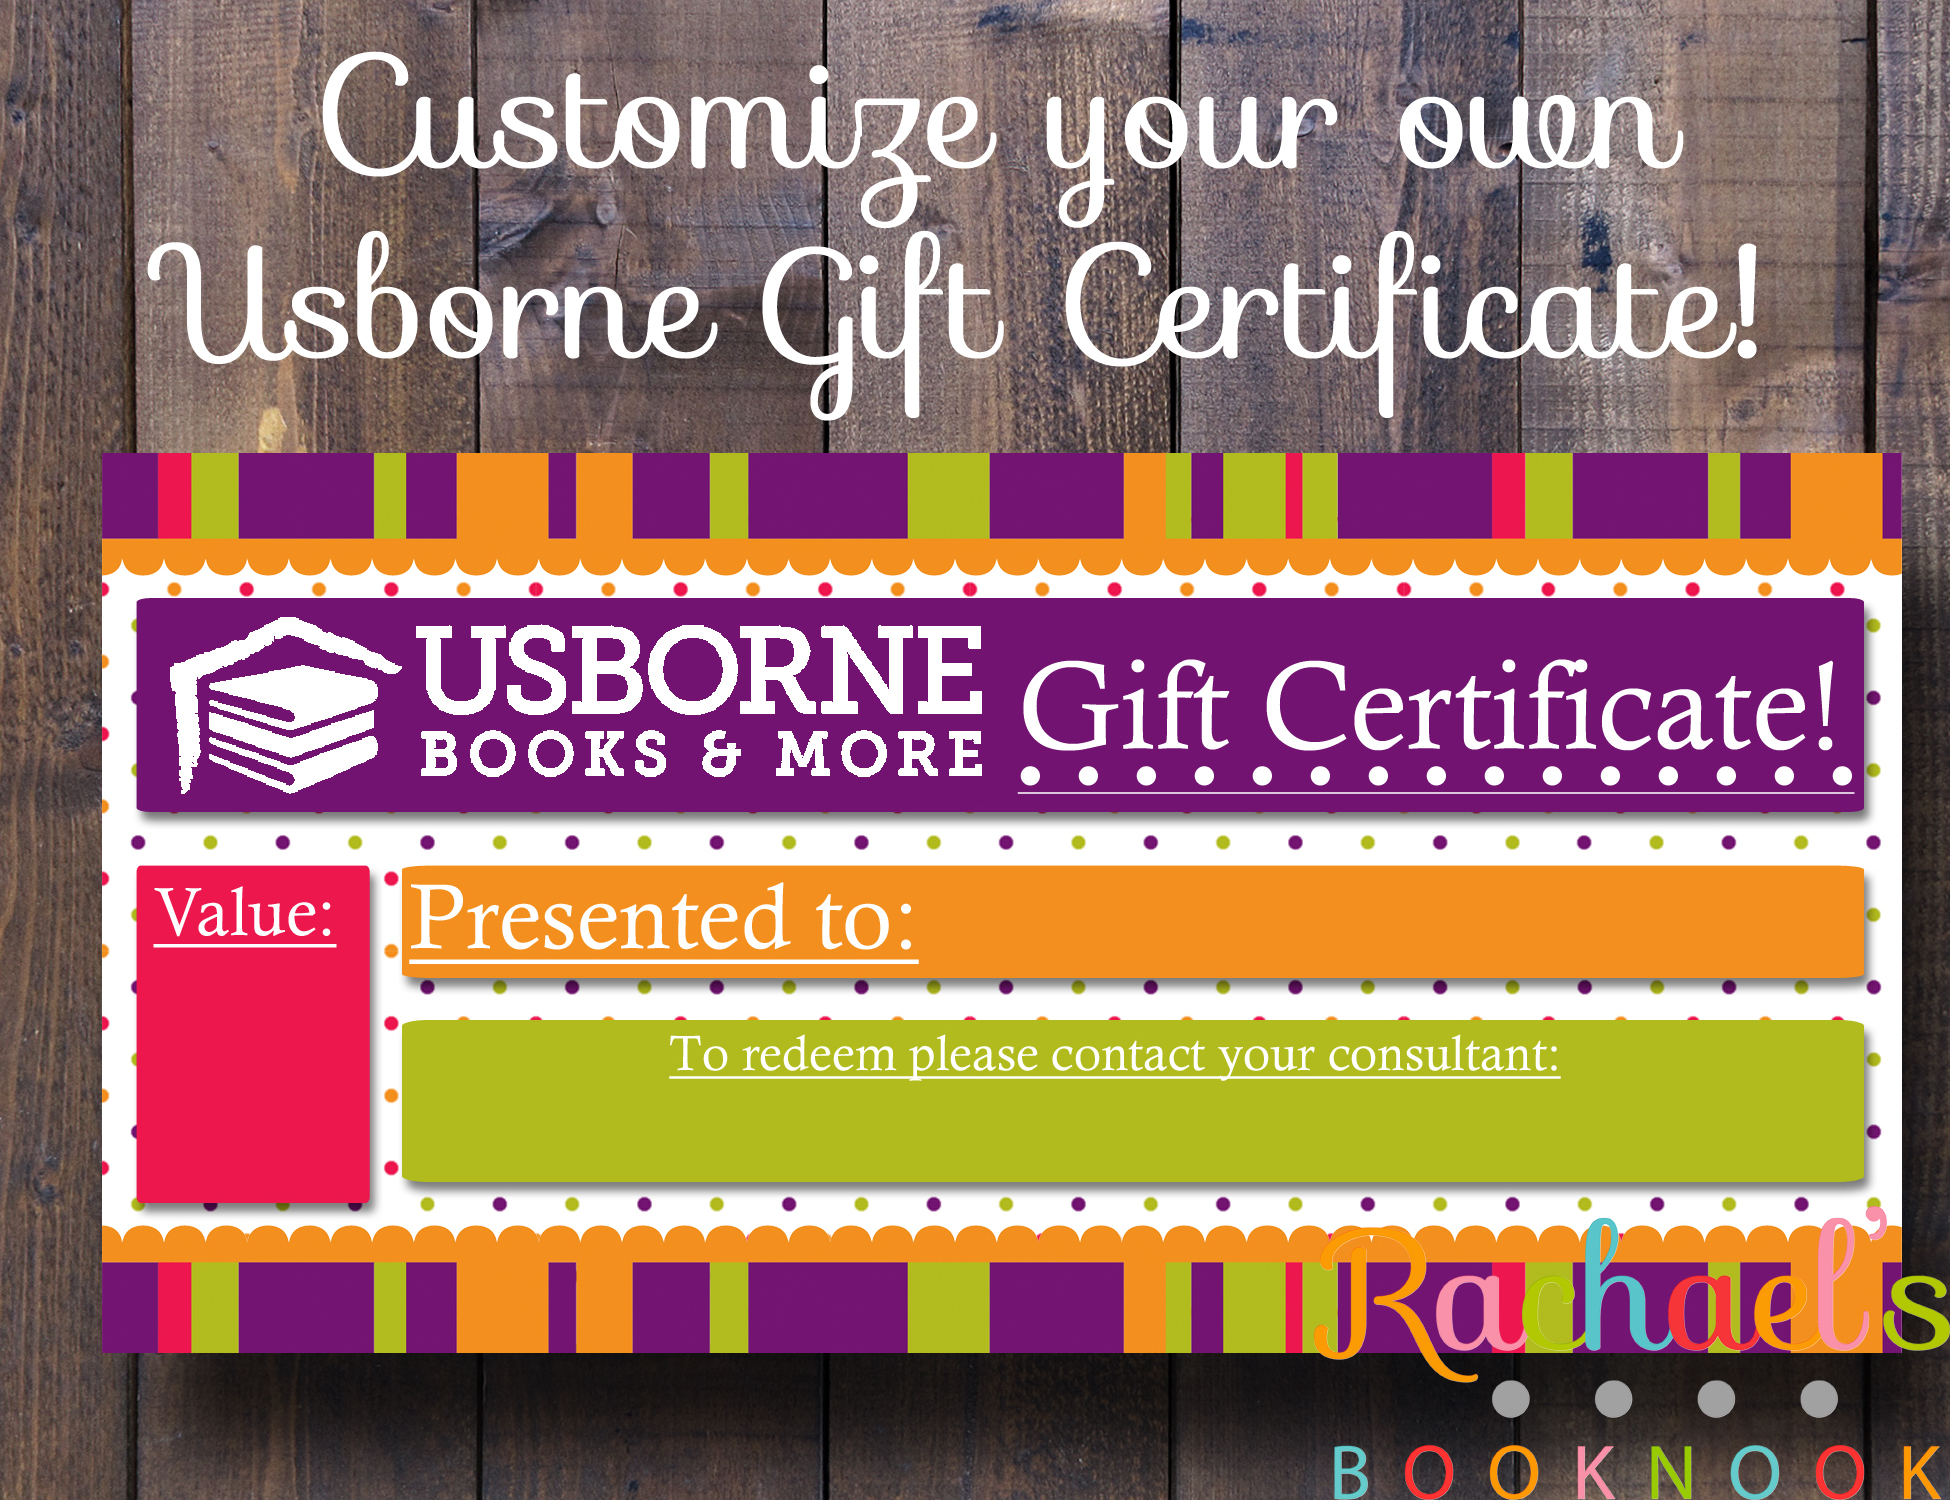 Business Helps For Usborne Consultants Archives Rachael